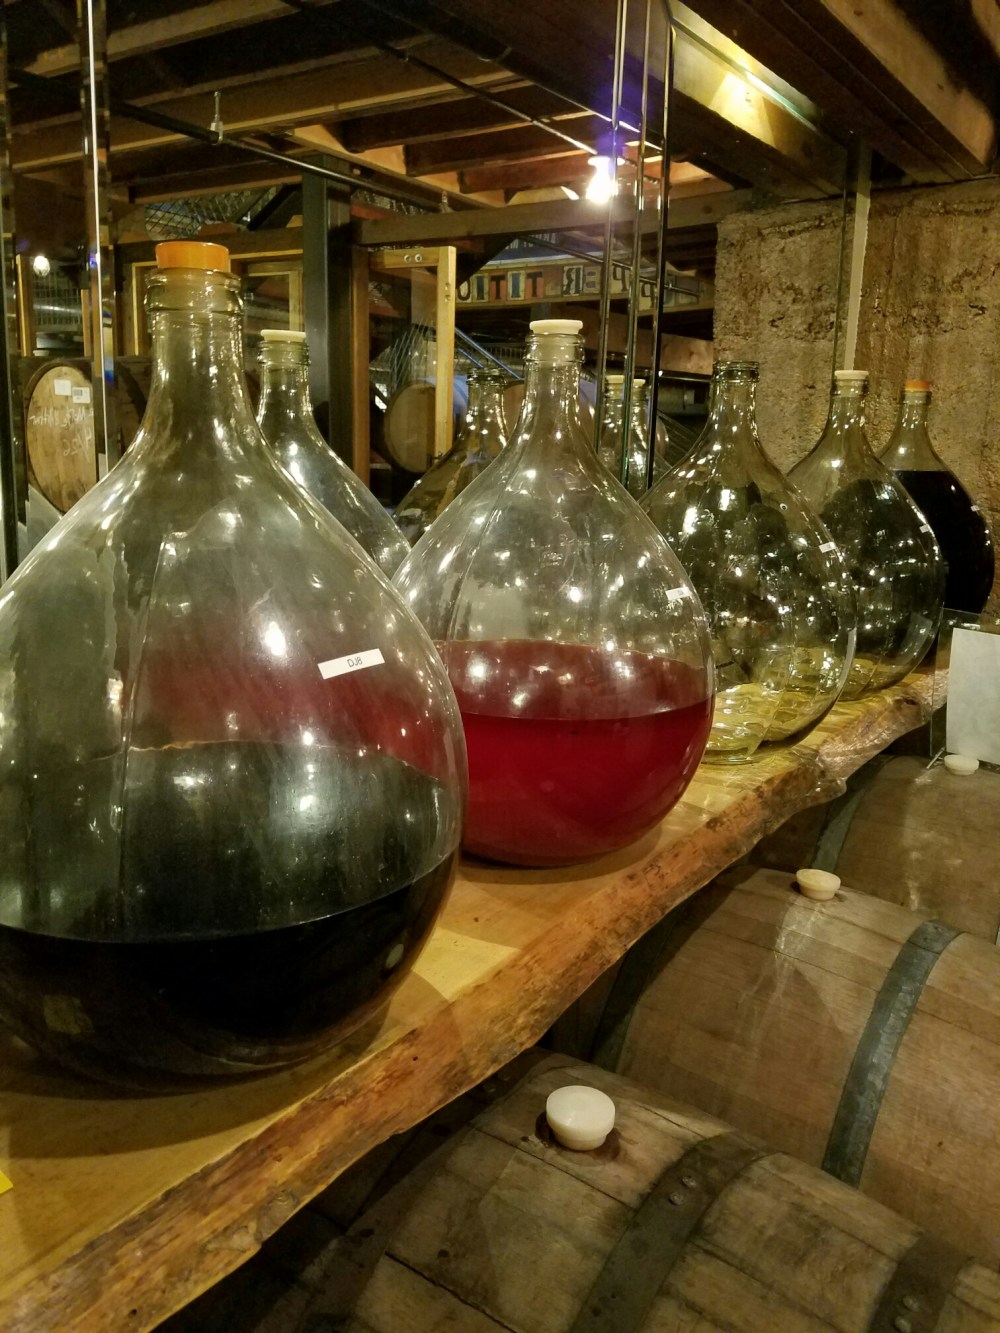 Demijohns used to sample new varietals at Superstition Meadery